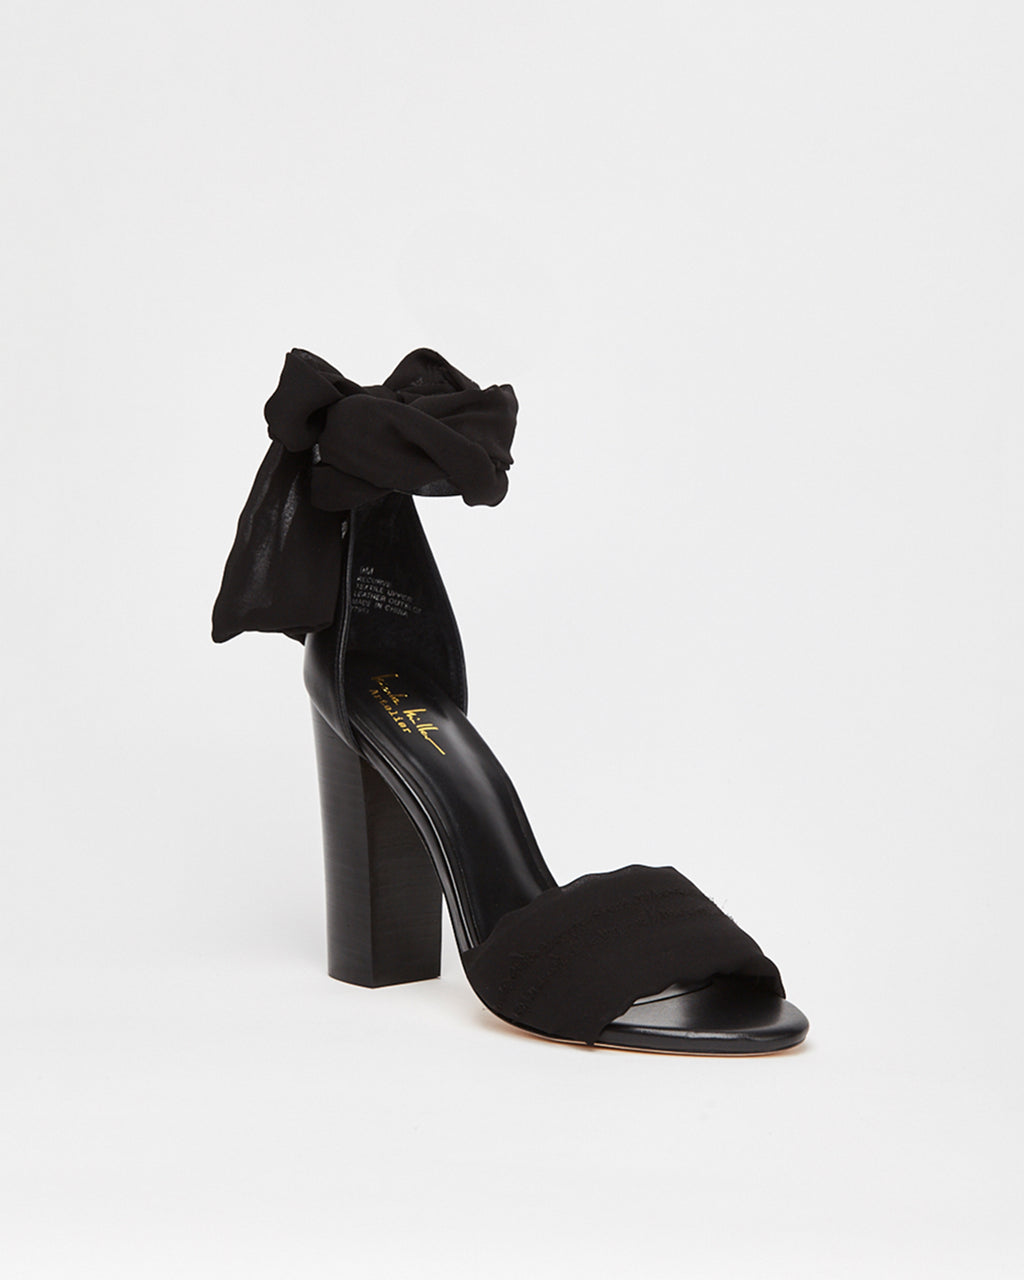 RECURVE - RECURVE SANDAL - shoes - shoes - In a lightweight fabric, this summer sandal completes any day to night look. The silky ankle tie adds a chic touch to these chunky heels.�